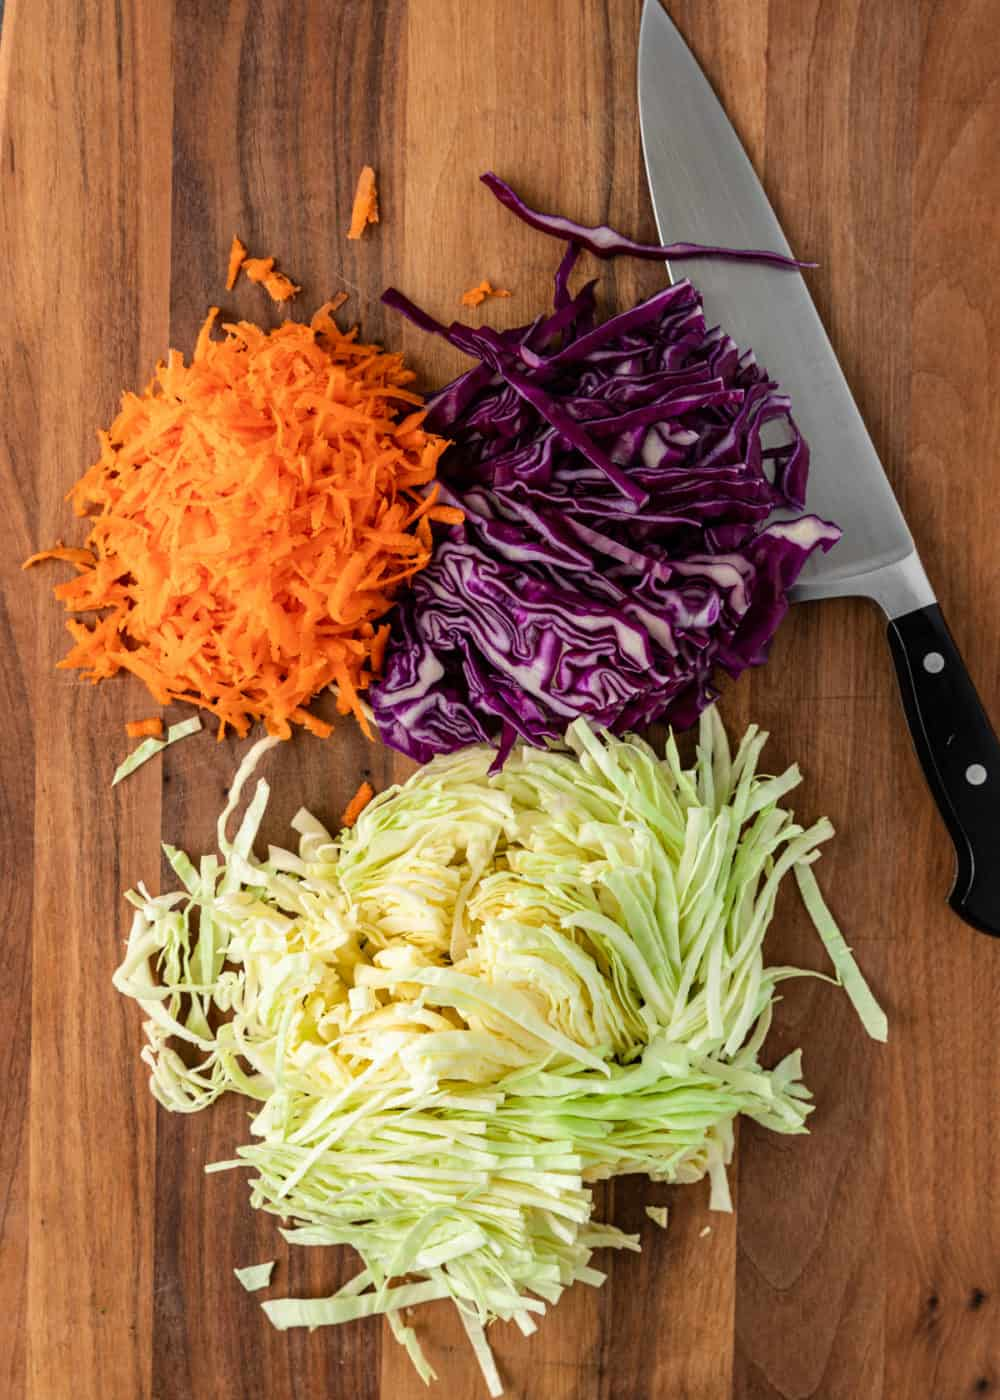 overhead photo: piles of shredded white cabbage, purple cabbage, and carrots on cutting board next to chef's knife